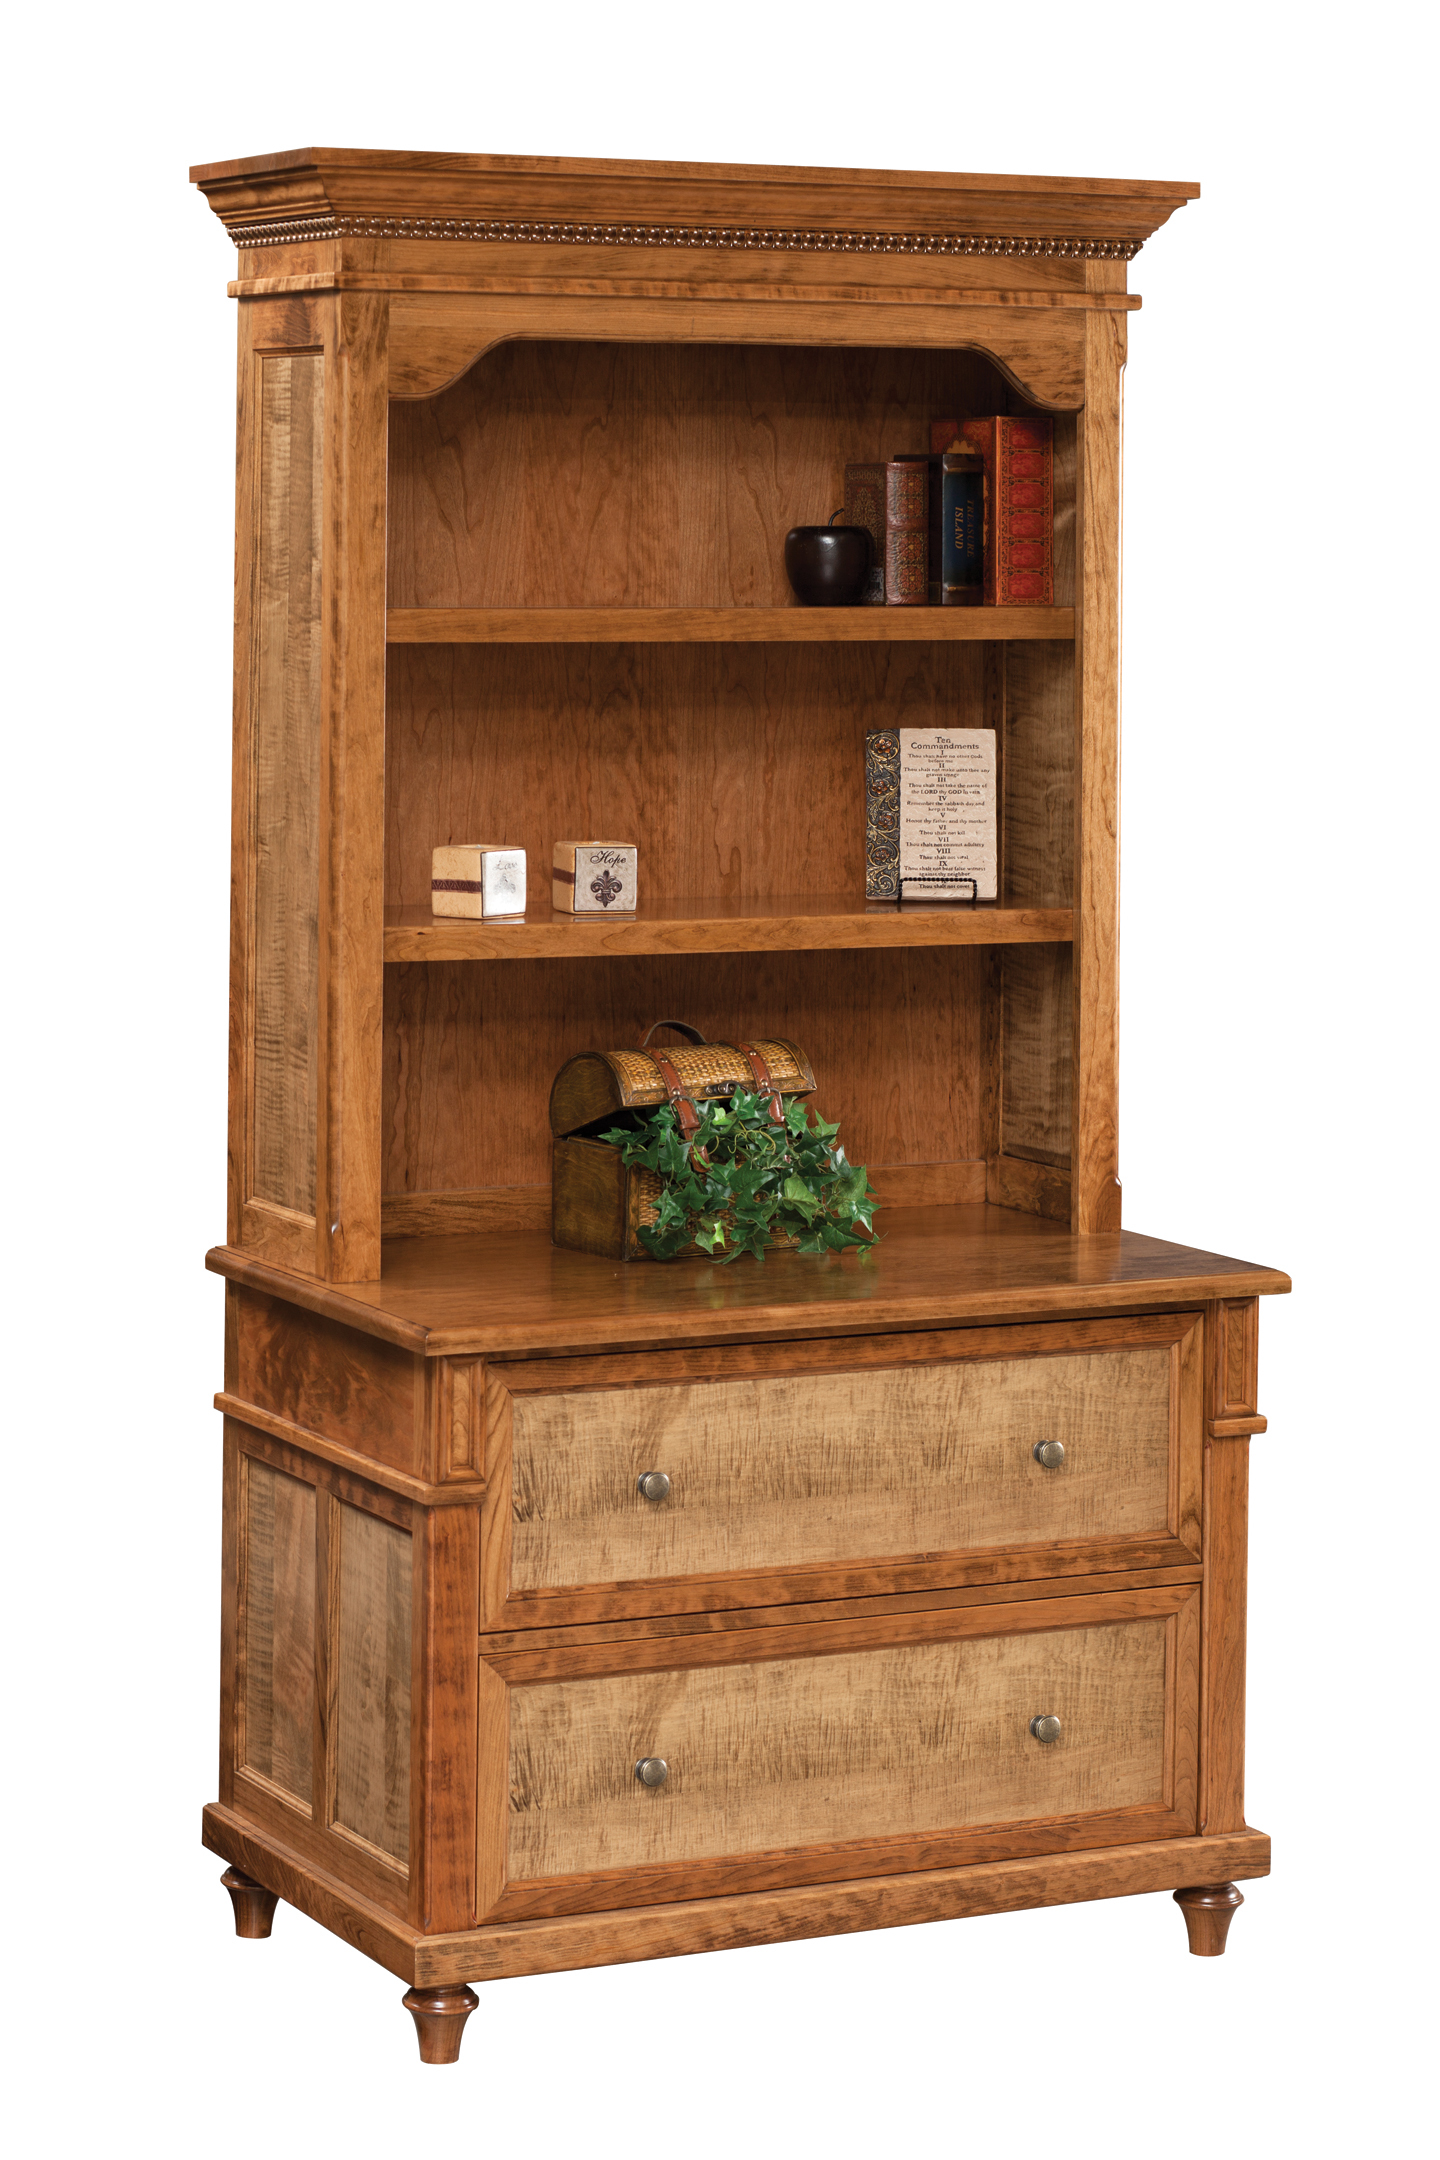 Bridgeport Lateral File & Bookshelf by Dutch Creek brid-904 brid-913